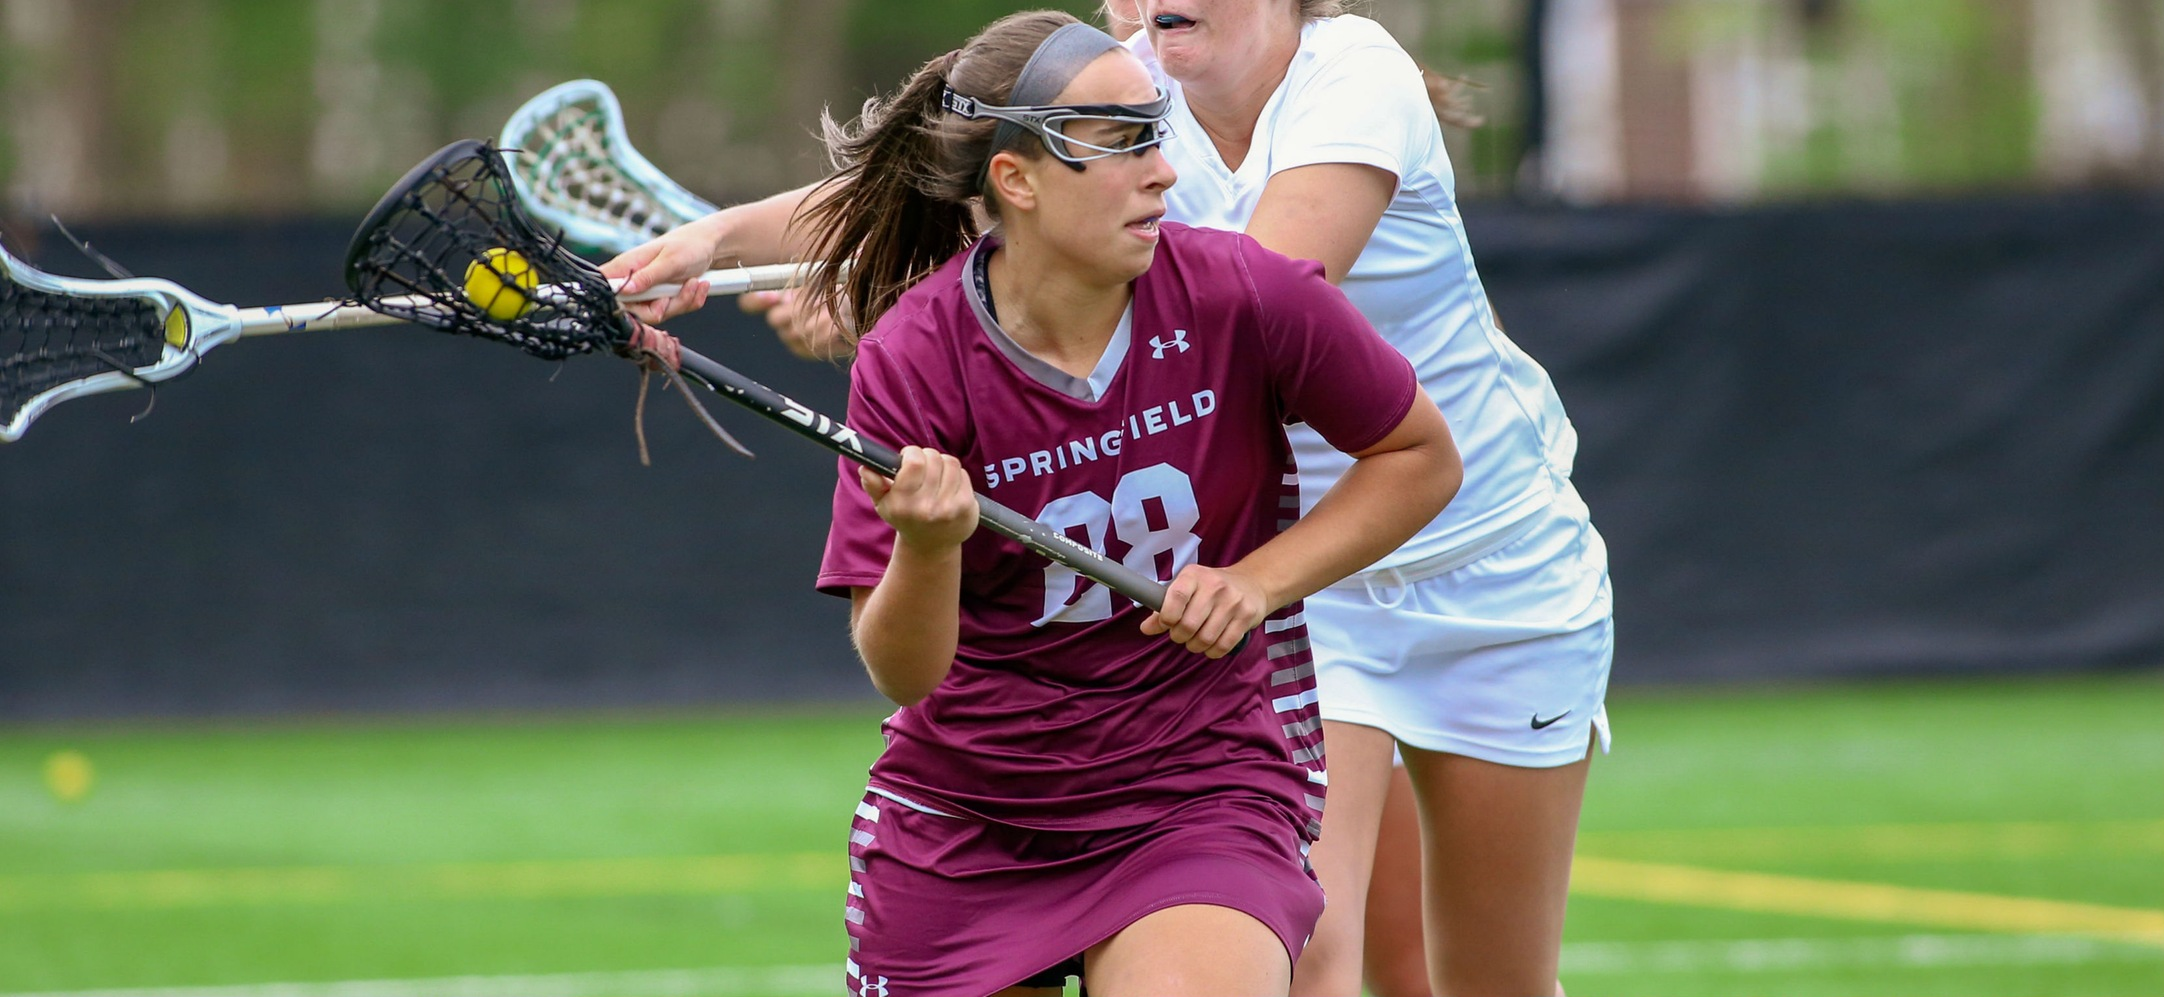 Women's Lacrosse Falls to Babson, 15-13, in NEWMAC Championship Contest